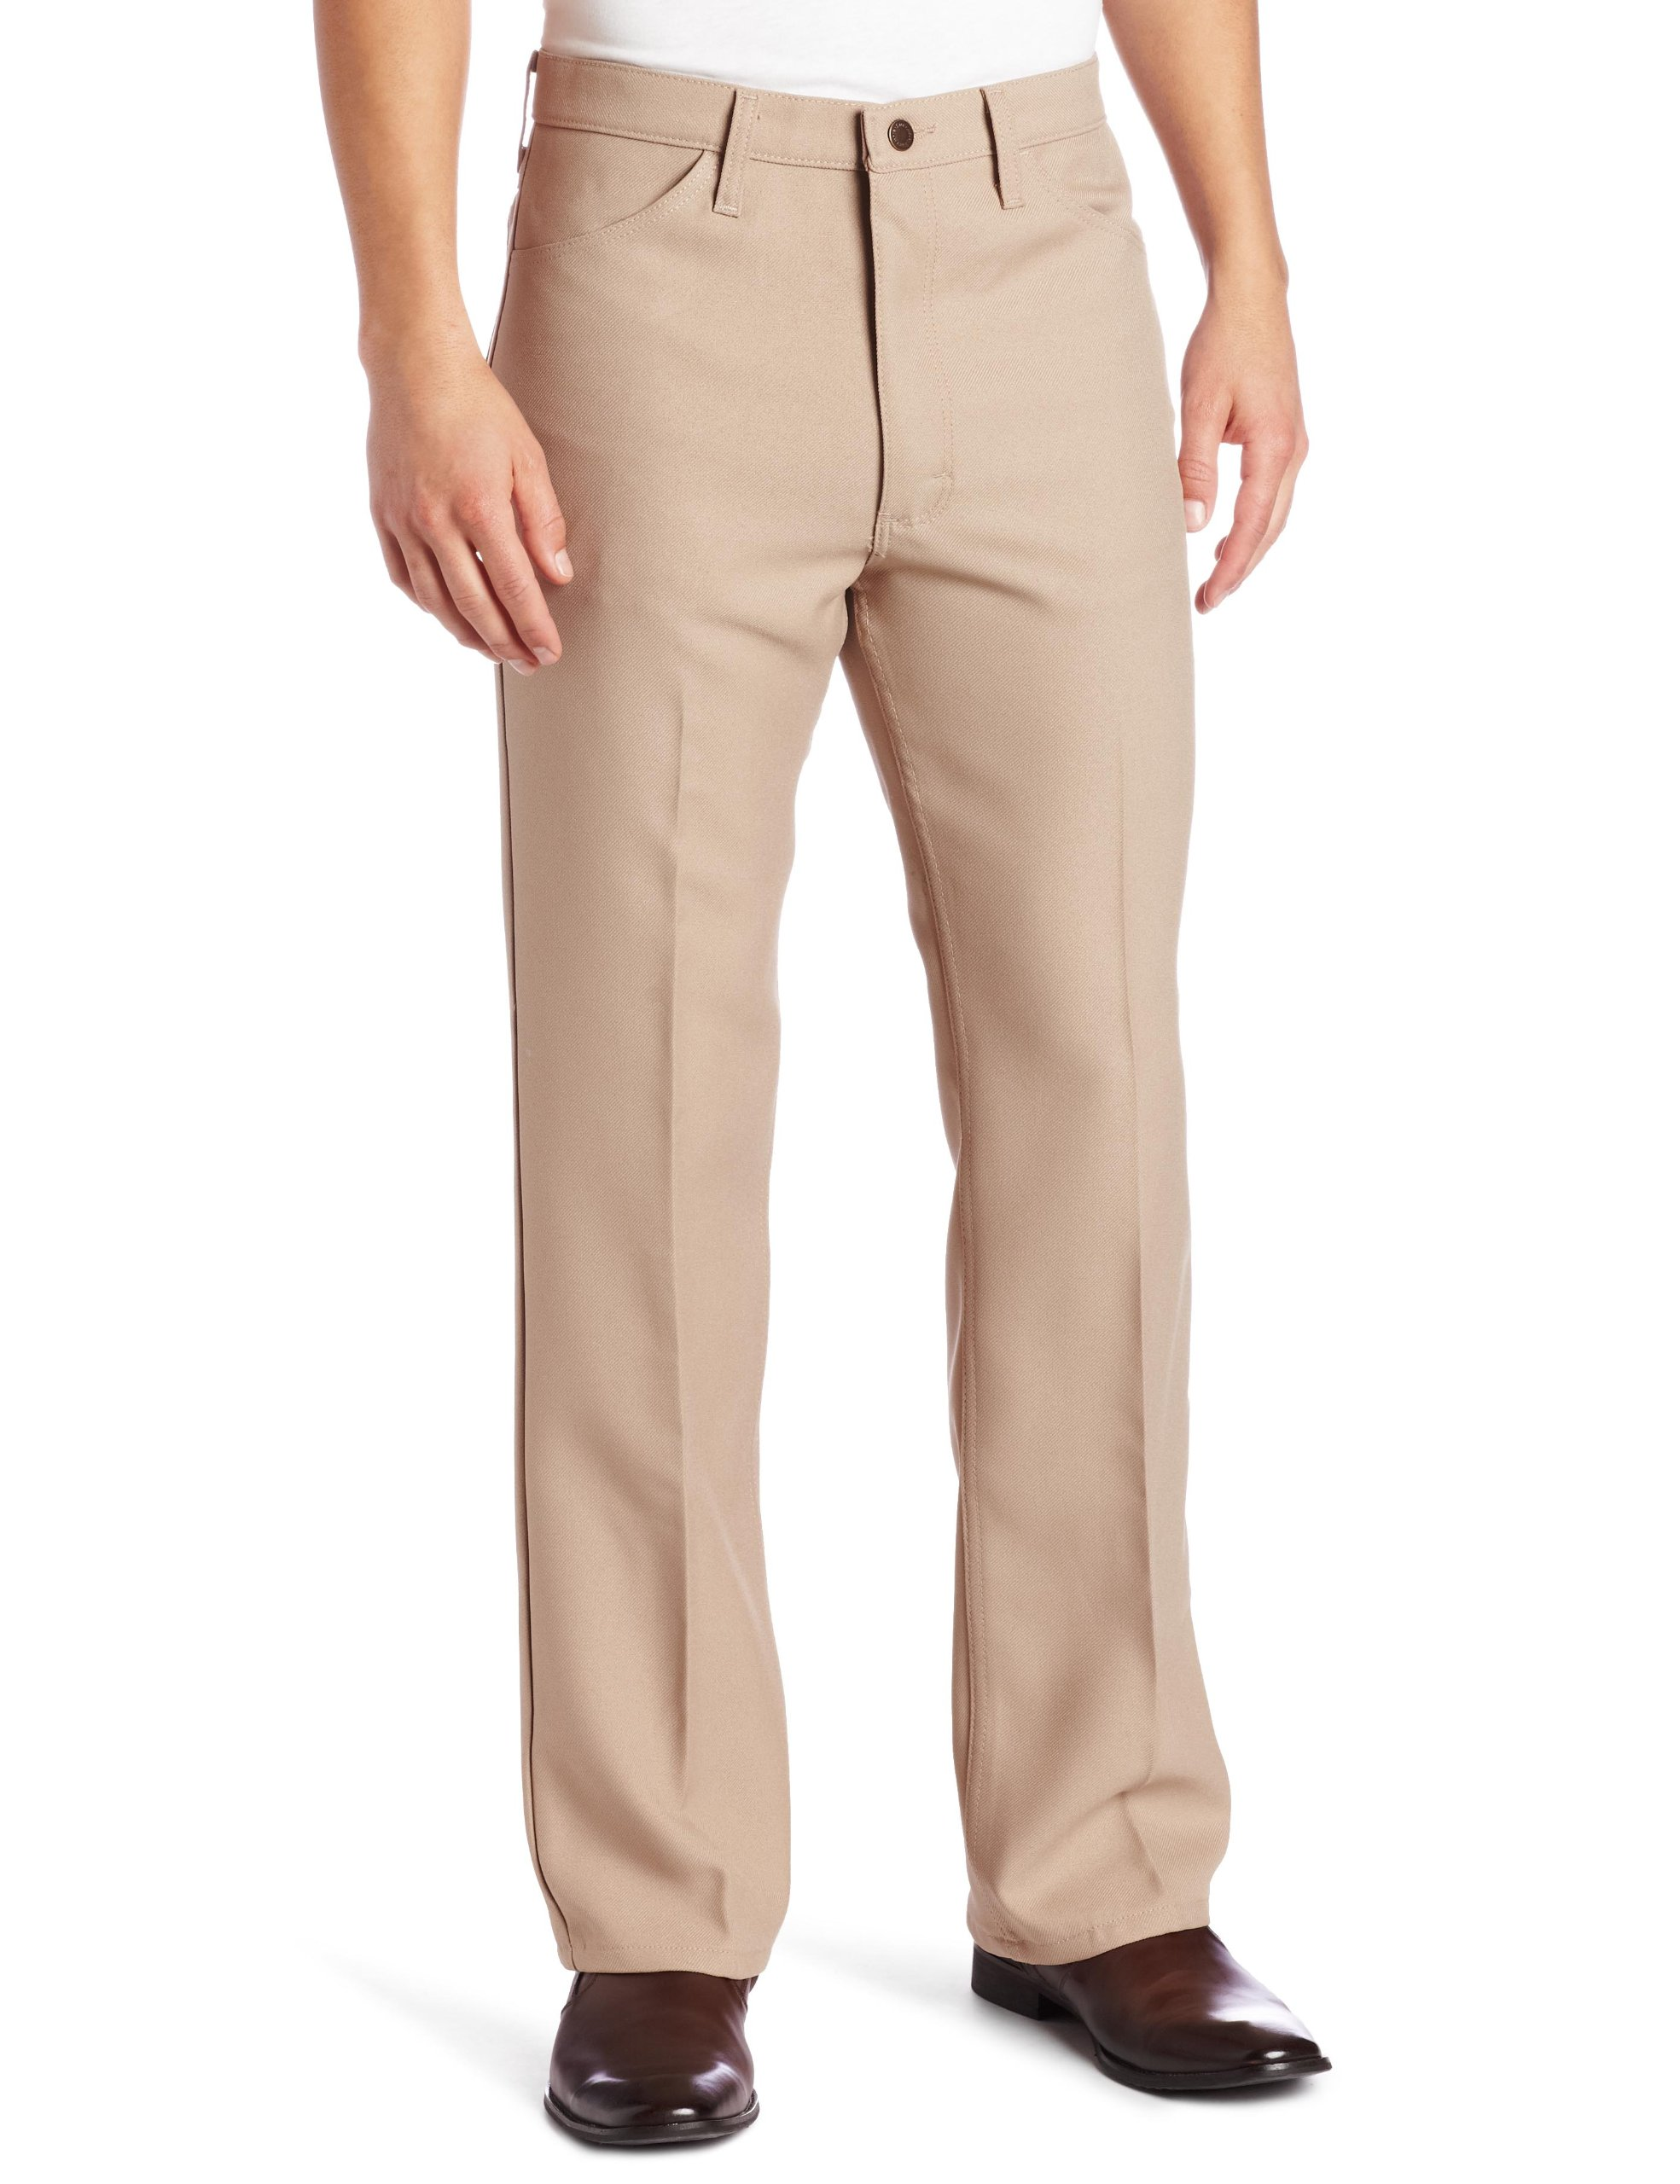 Wrangler Men's Wrancher Dress Pant,Dark Beige,38x31